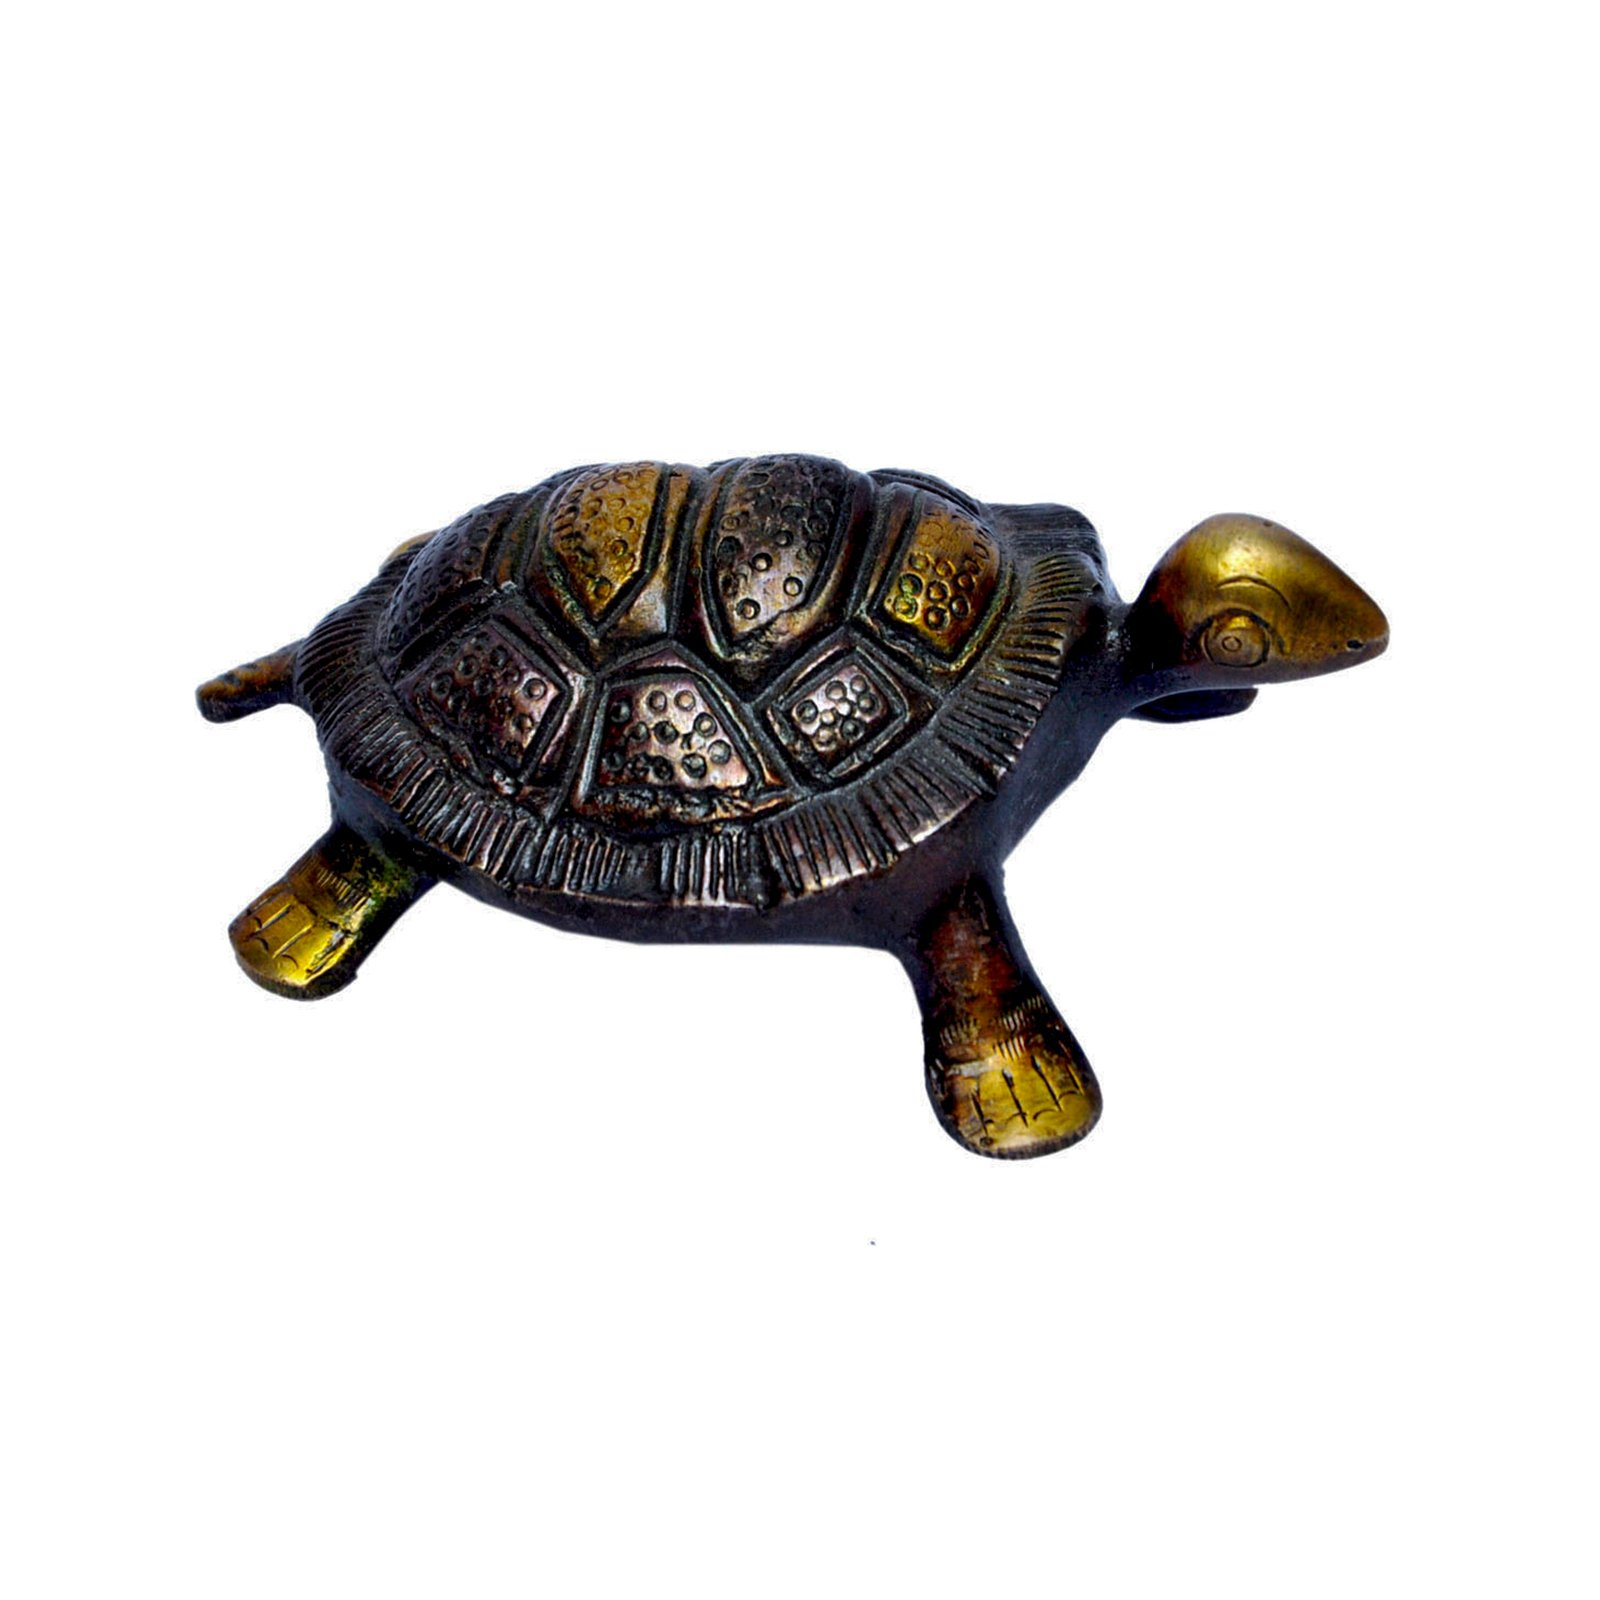 MP Crafts Brass Fengshui Turtle Tortoise Kachua Vaastu for Good Luck, Wish Fulfillment, Showpiece, Home Decor, Protection, and Long Life Longevity by MP Crafts